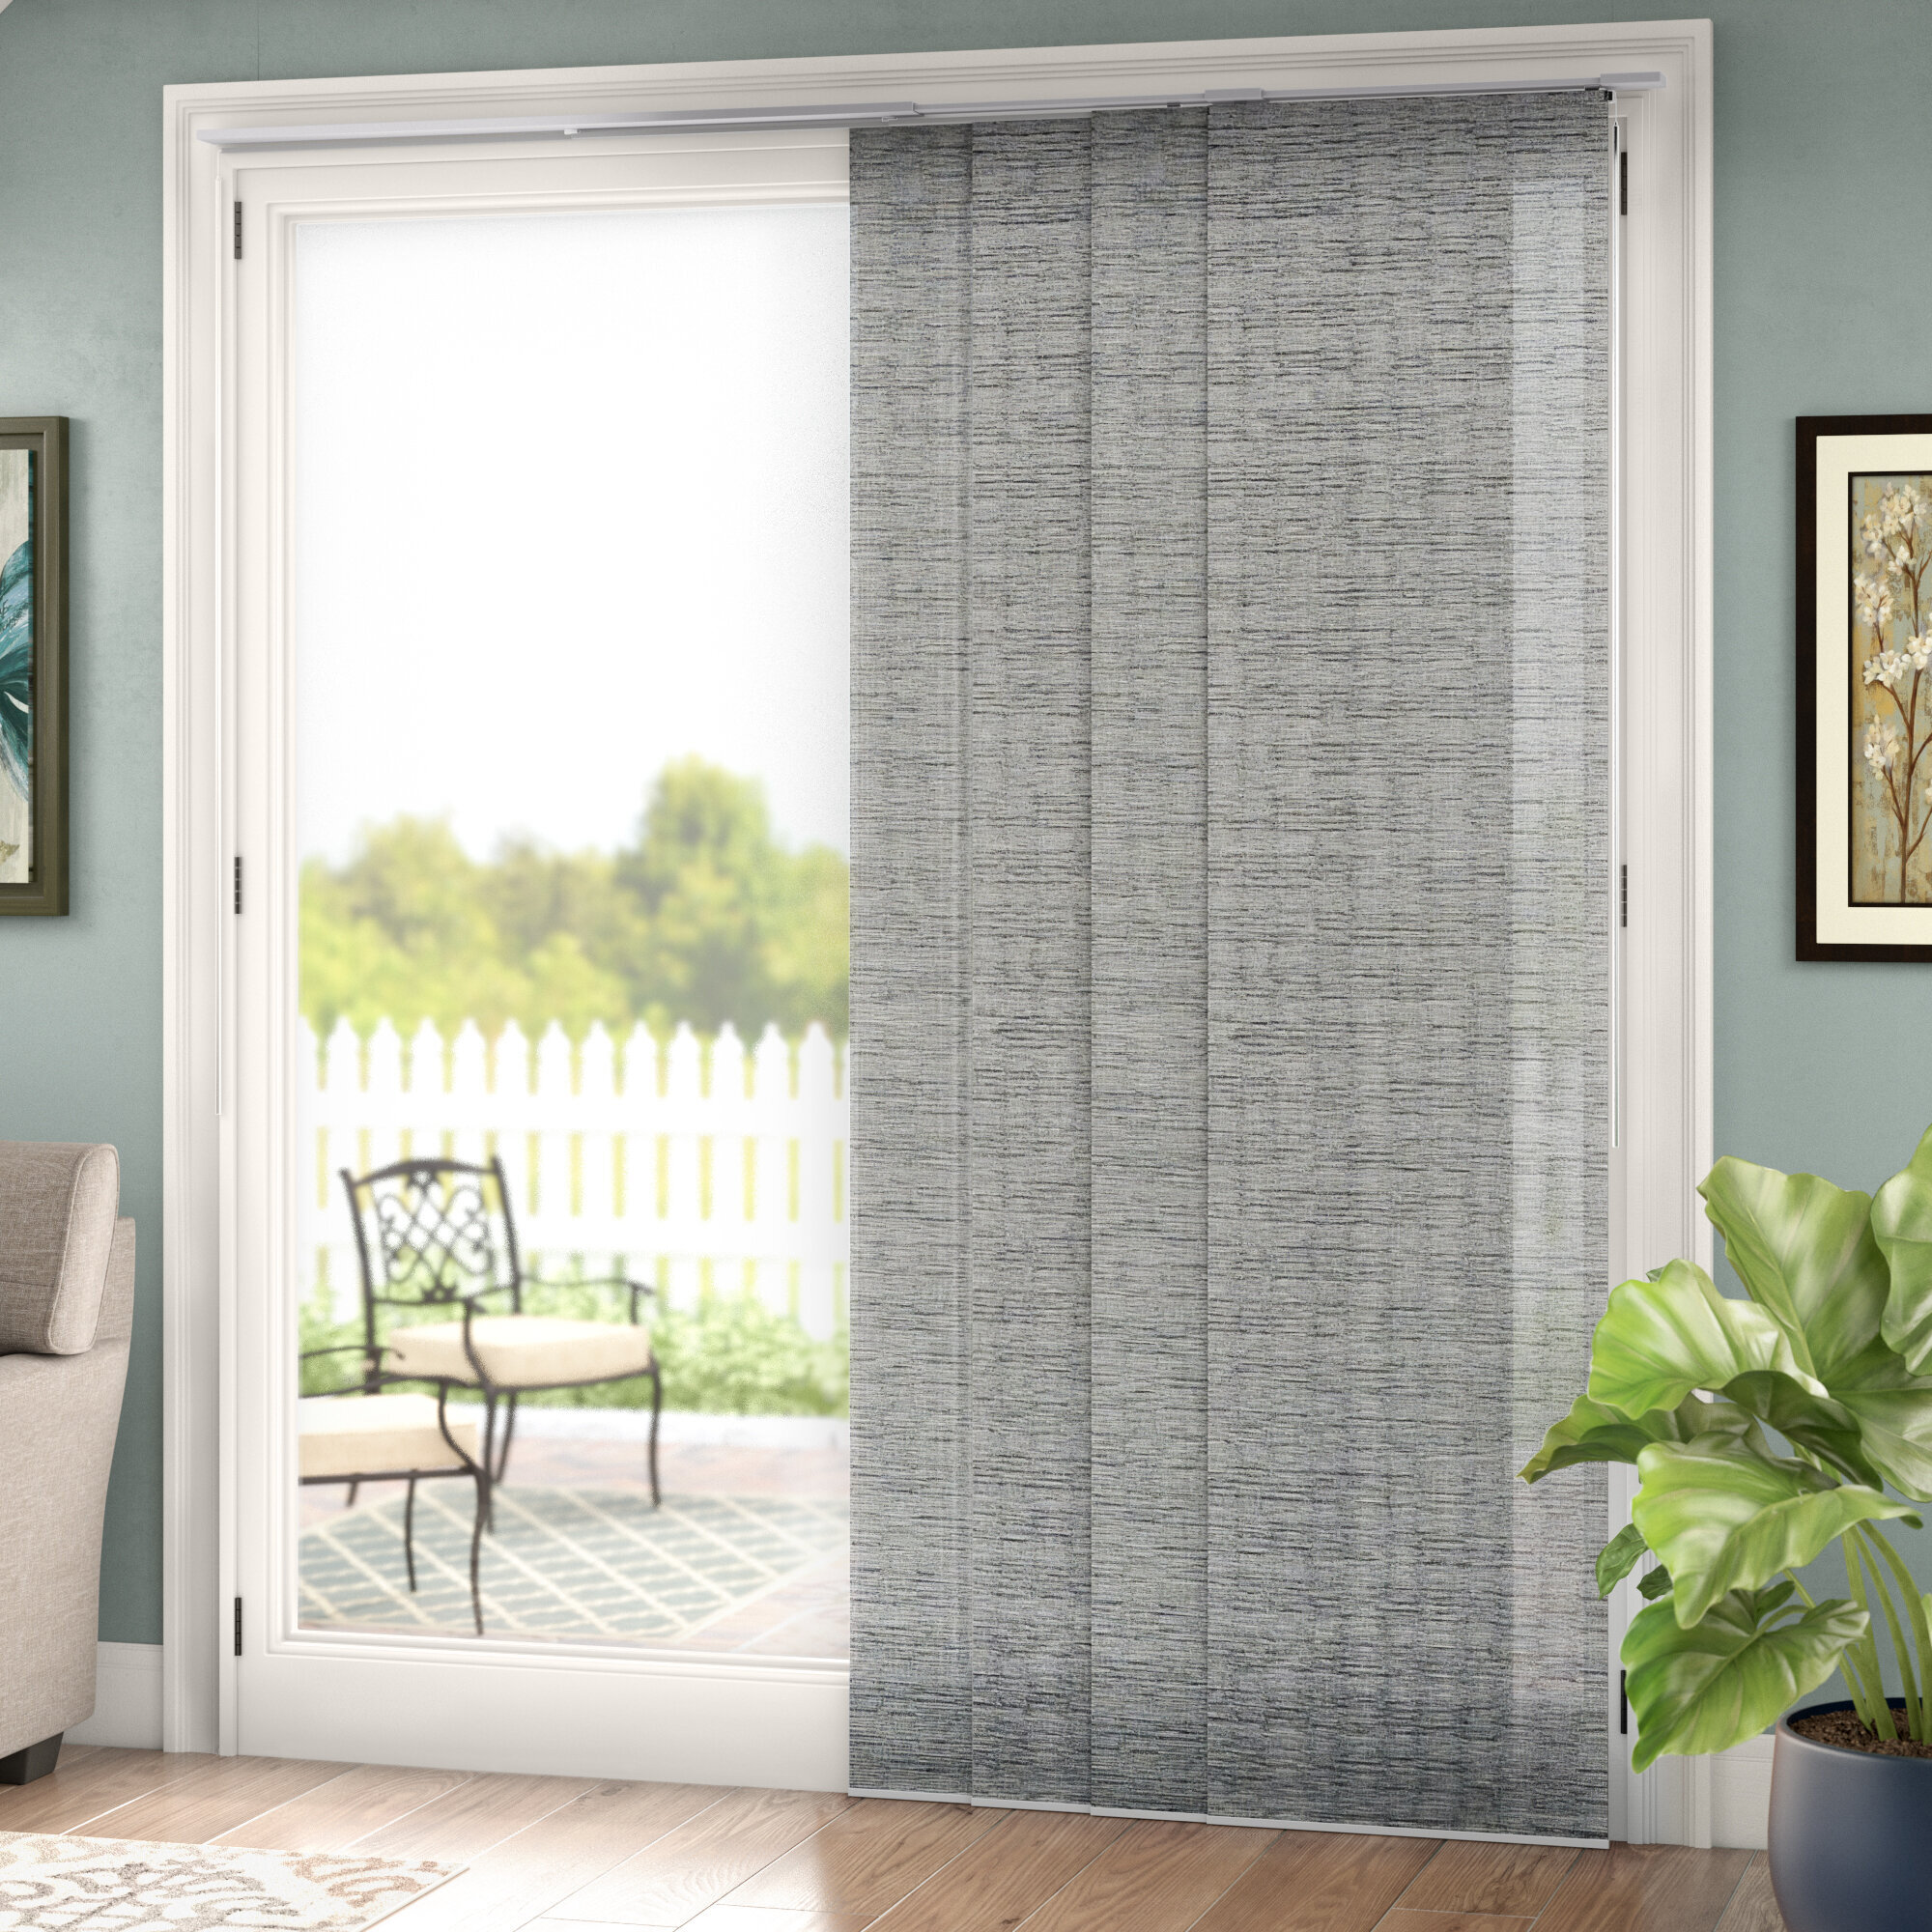 blinds also save energy by turning